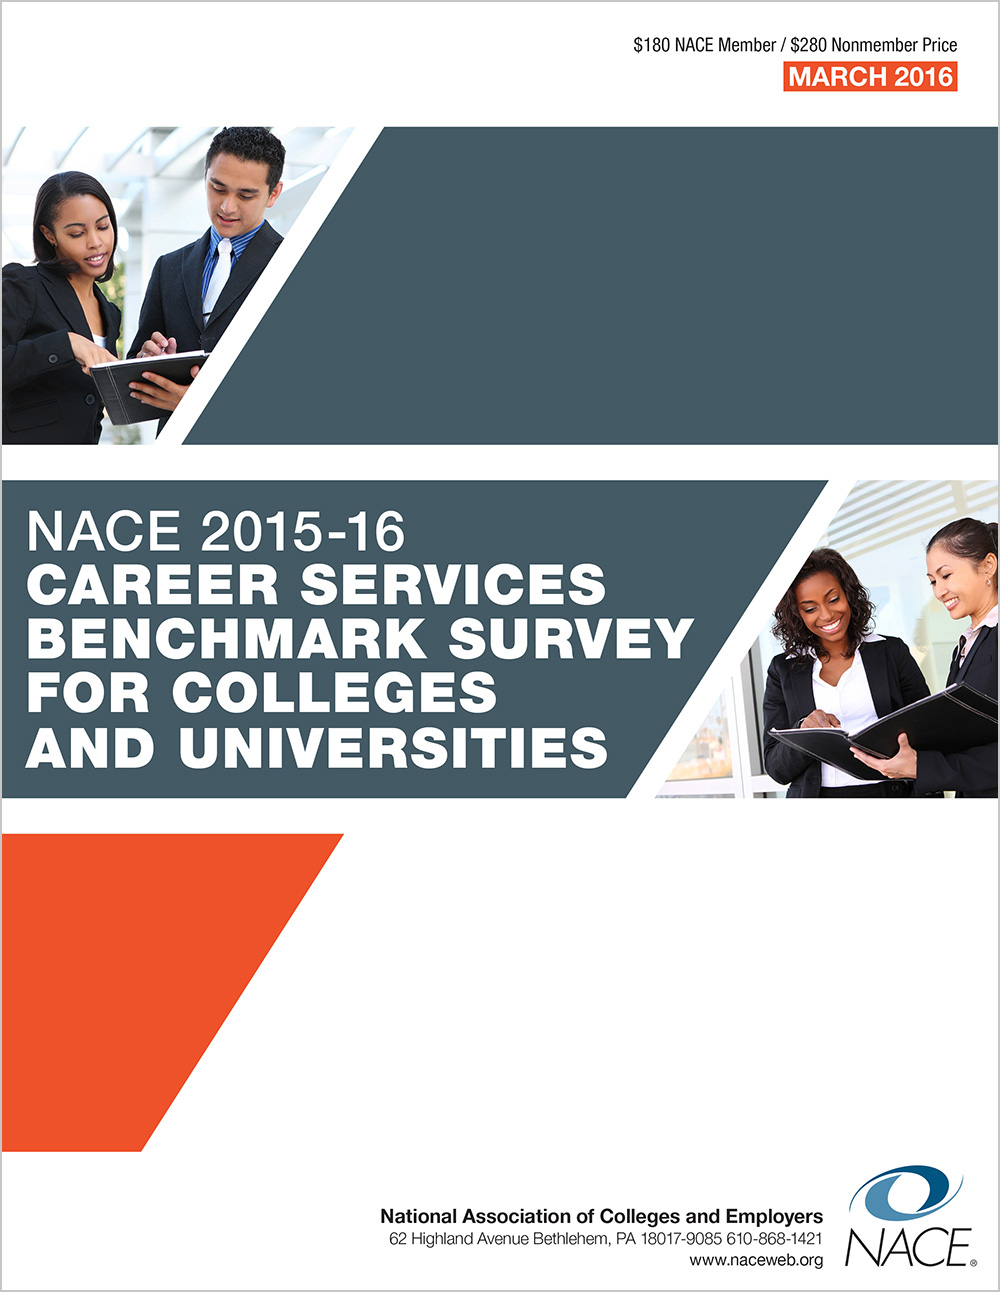 Career Services Benchmark Survey 2015-2016